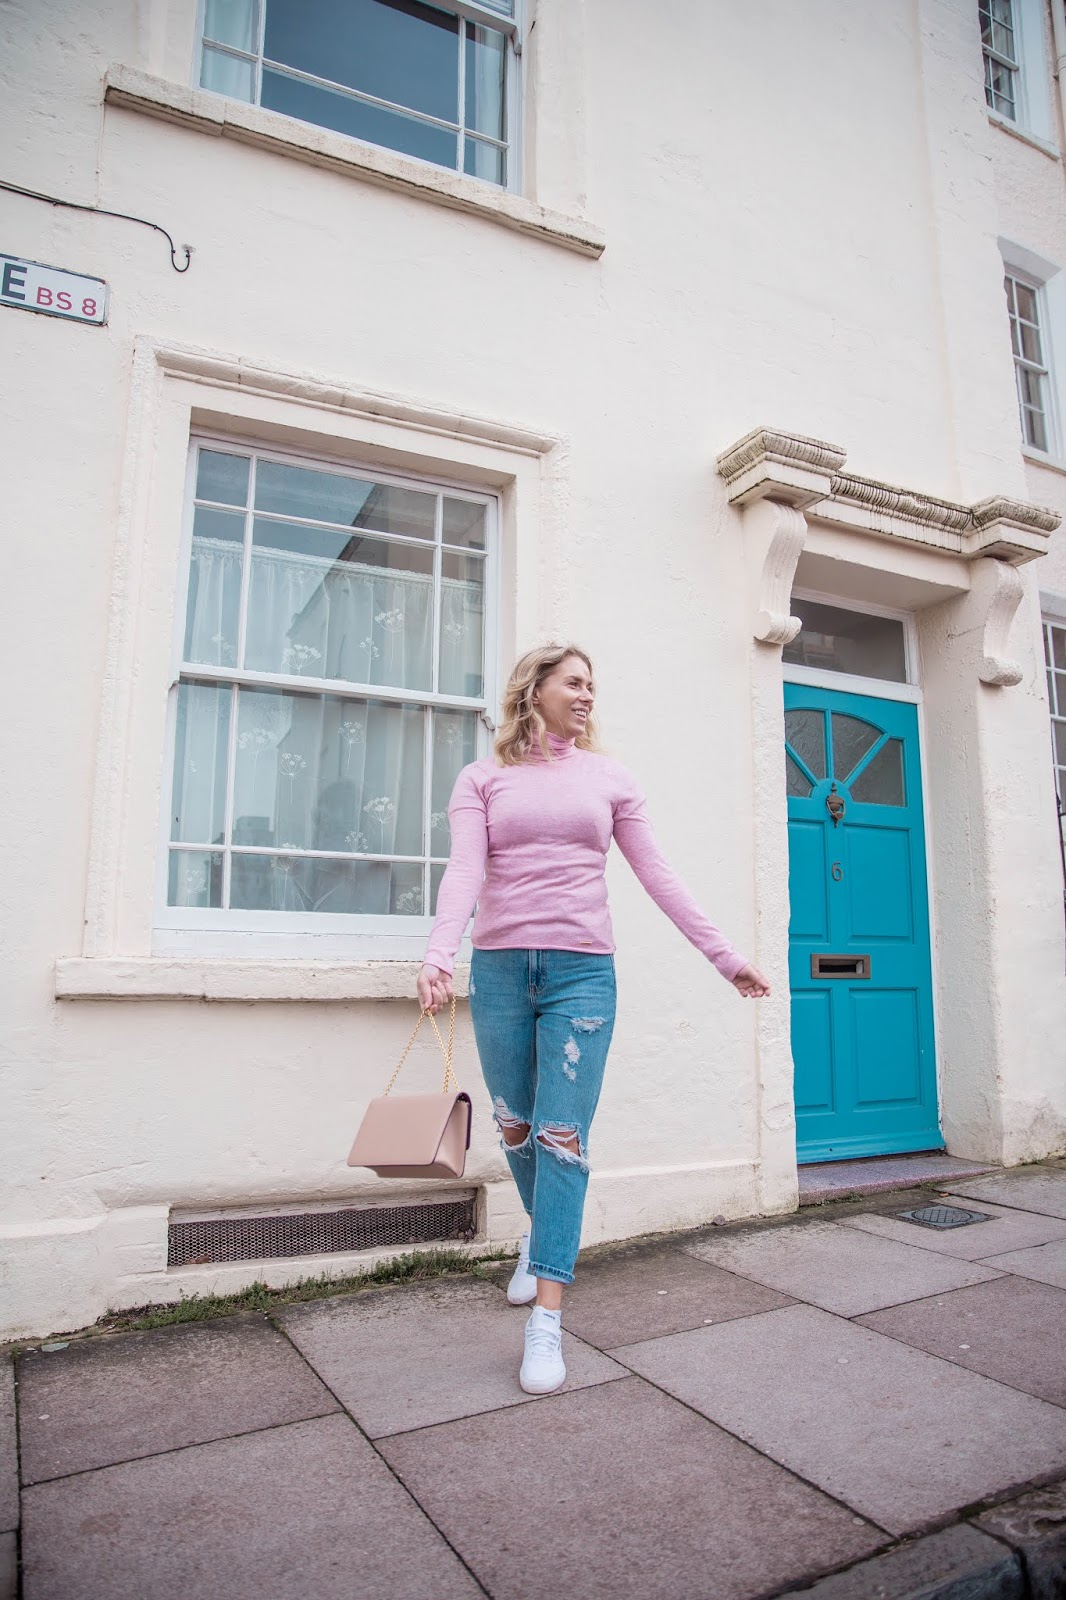 Rachel Emily outside a cream house with a blue door smiling widely